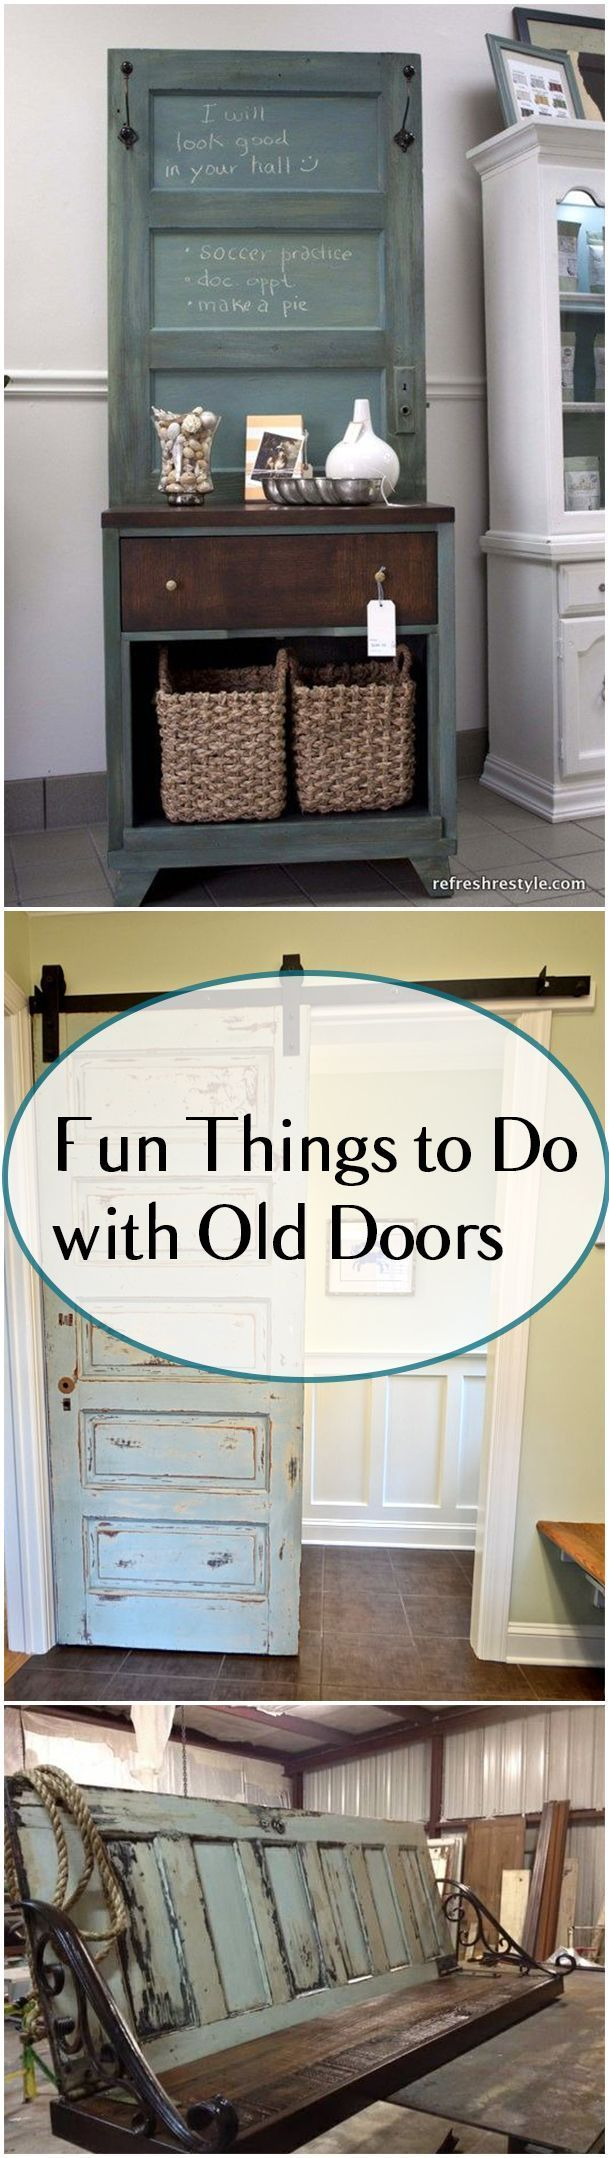 25+ unique Restoring old furniture ideas on Pinterest | Restoring furniture,  Furniture fix and Wood refinishing